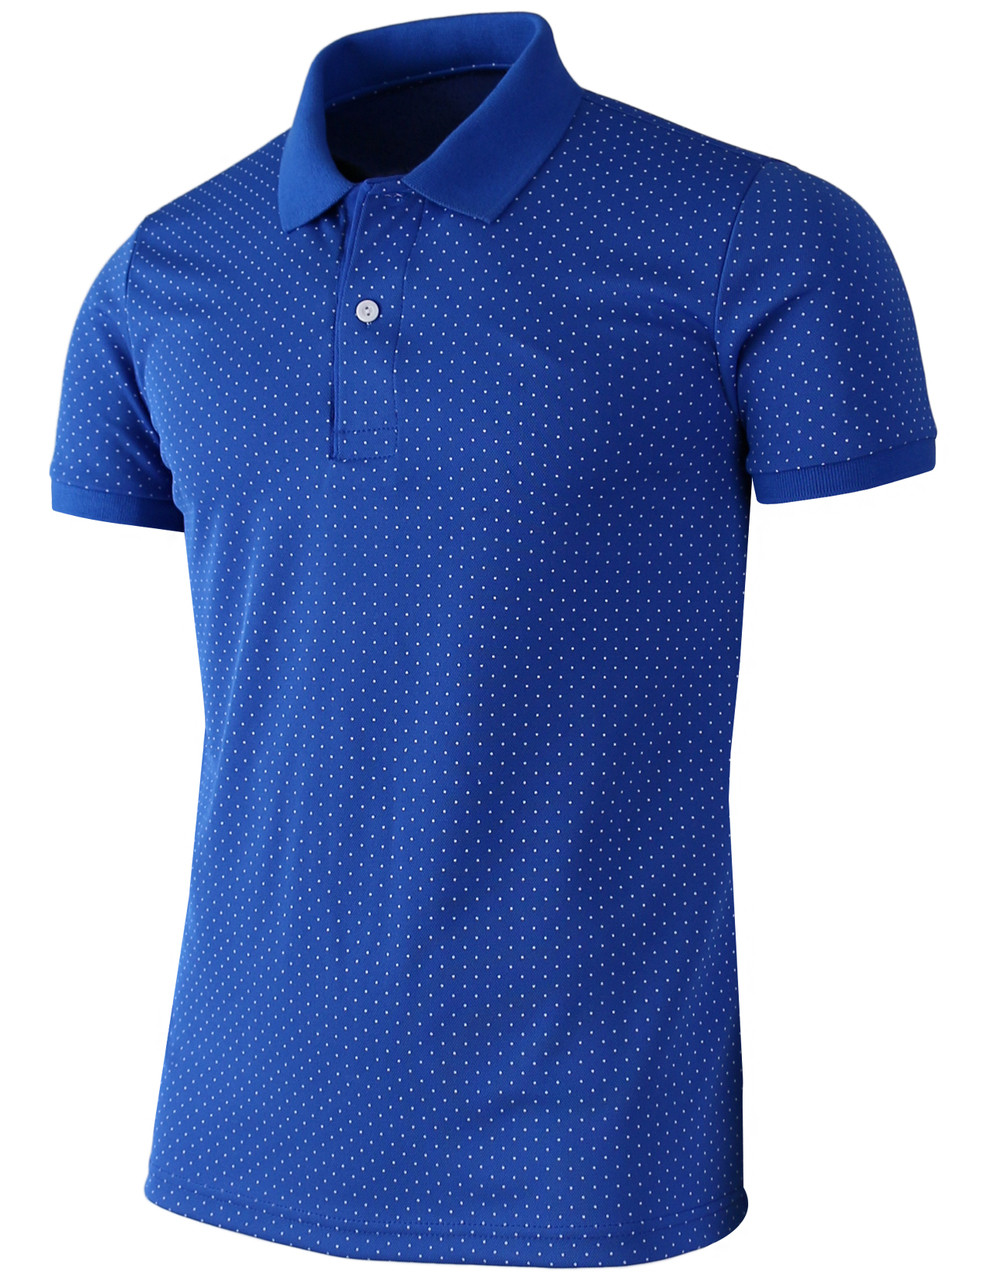 Casual short sleeves dot pattern design polo shirt unisex for Two color shirt design